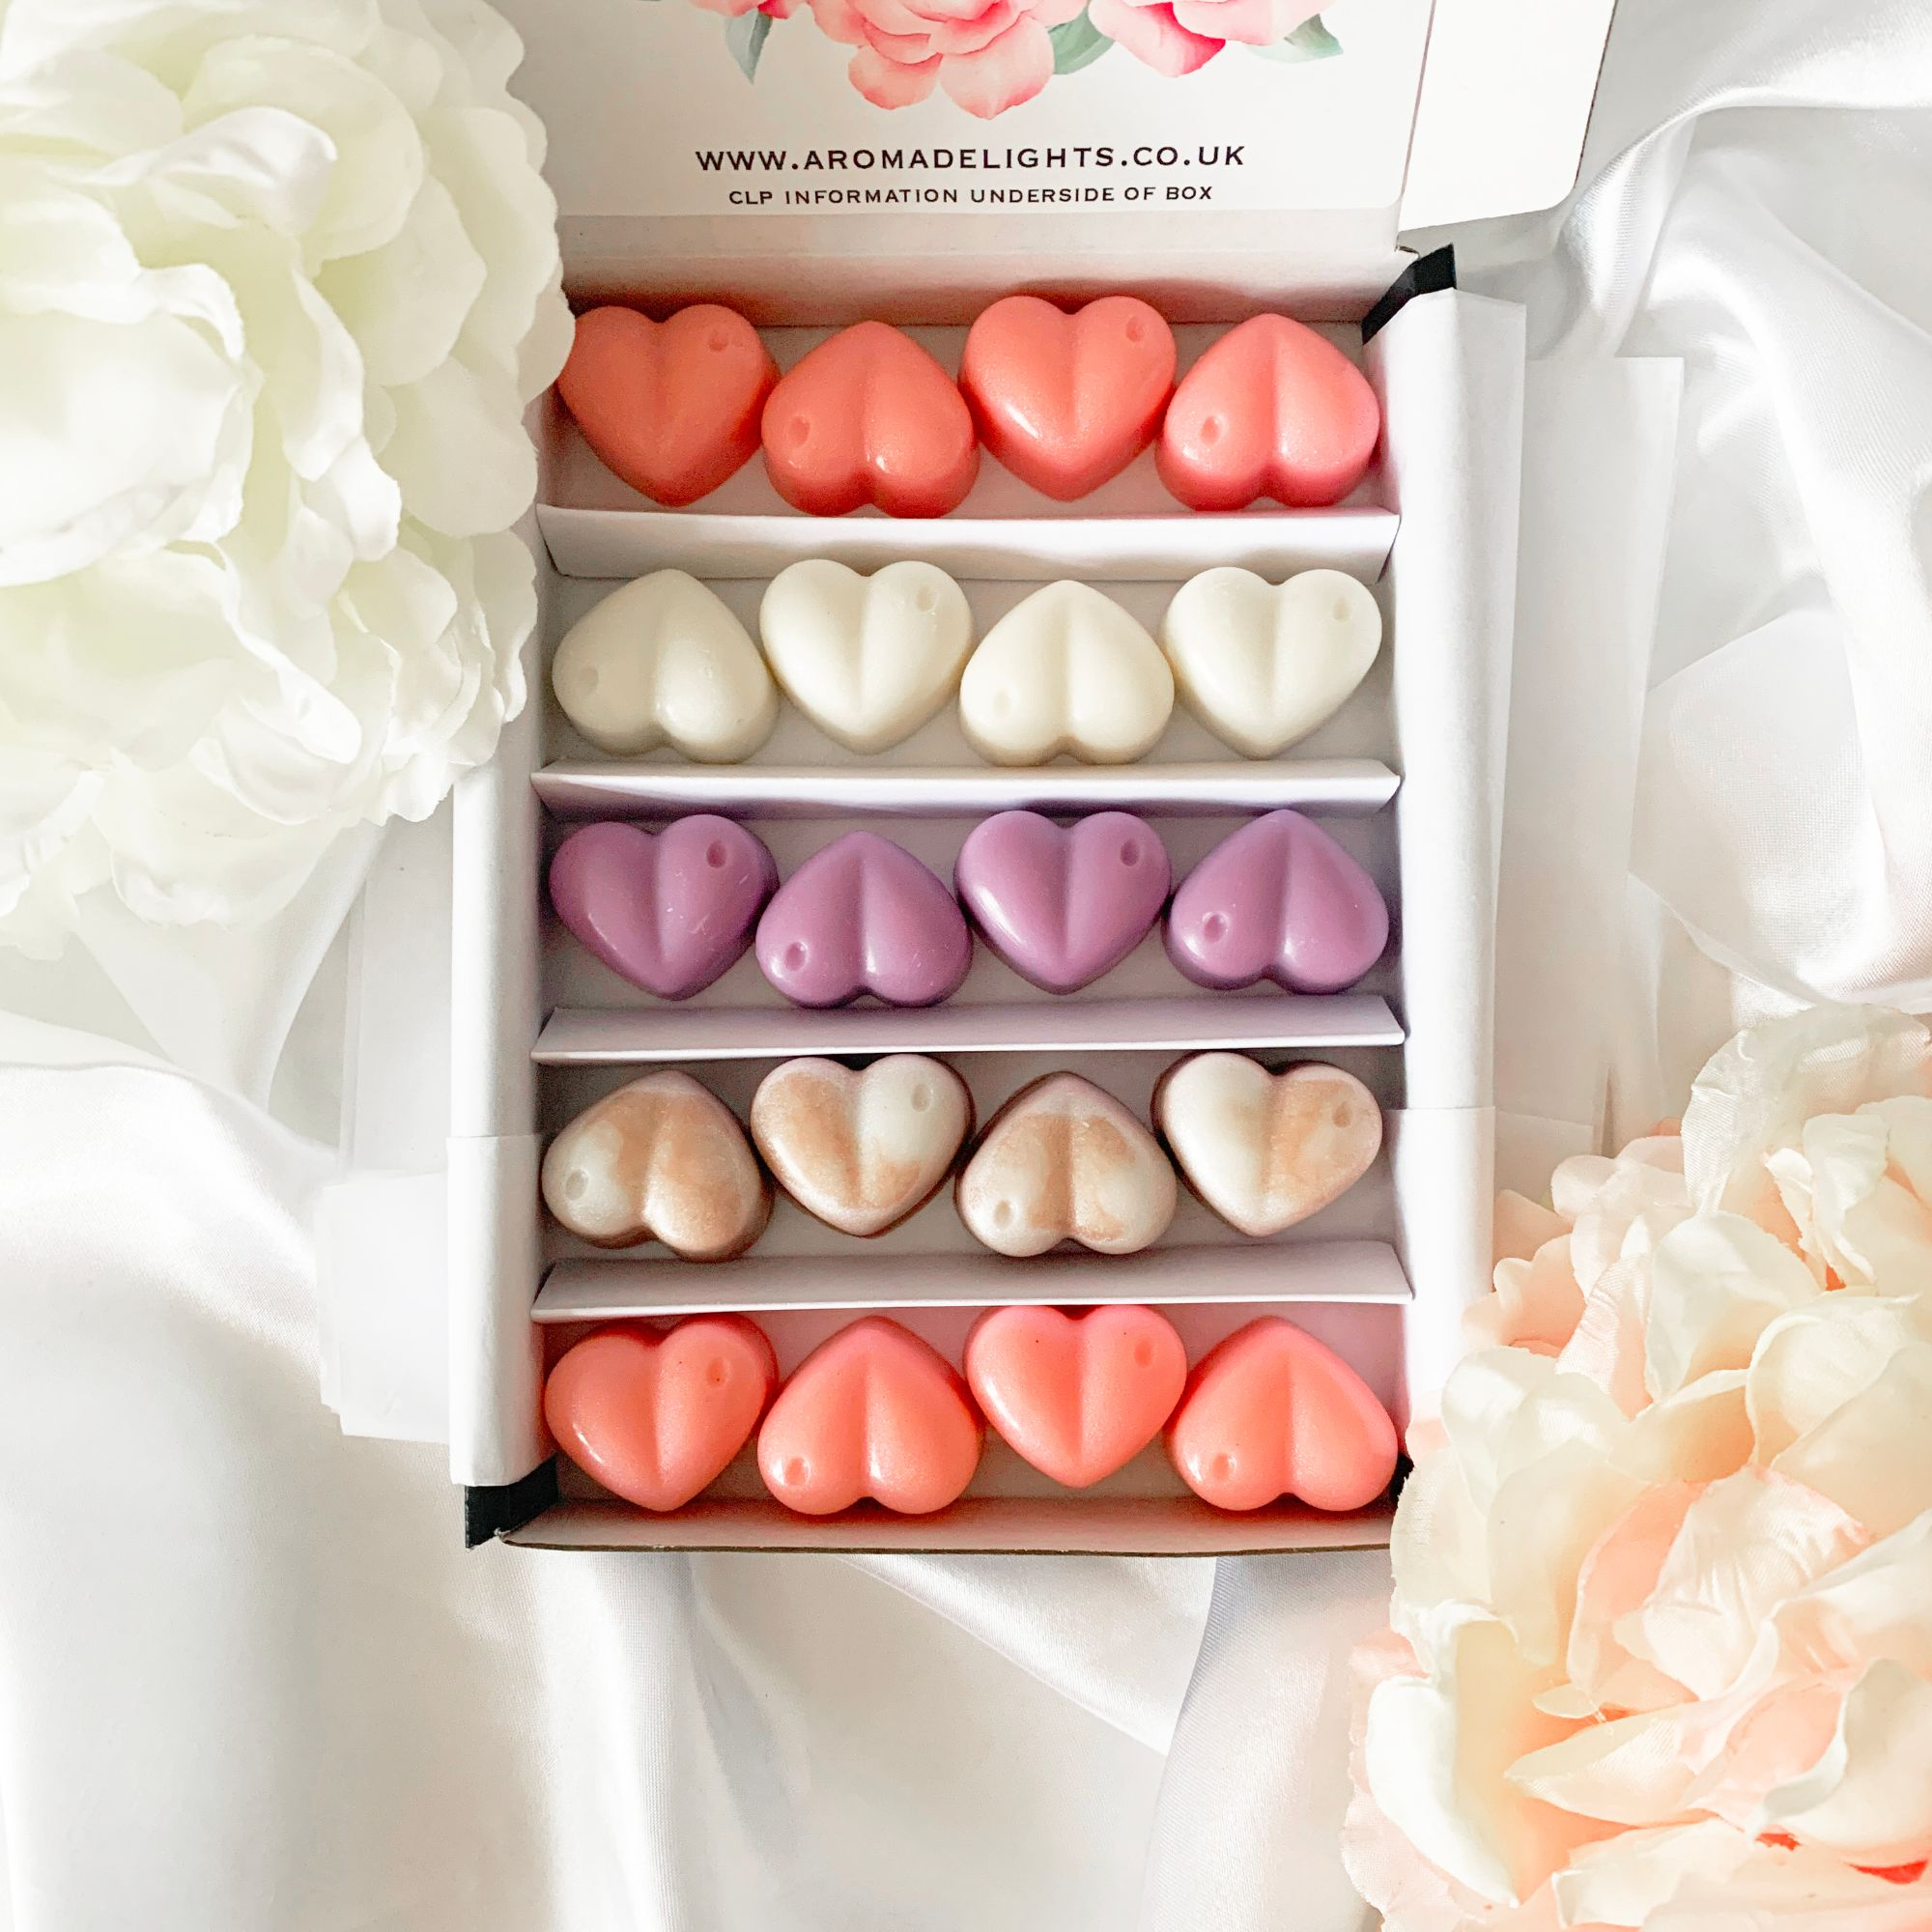 White Mother's Day Wax Melt Gift Box